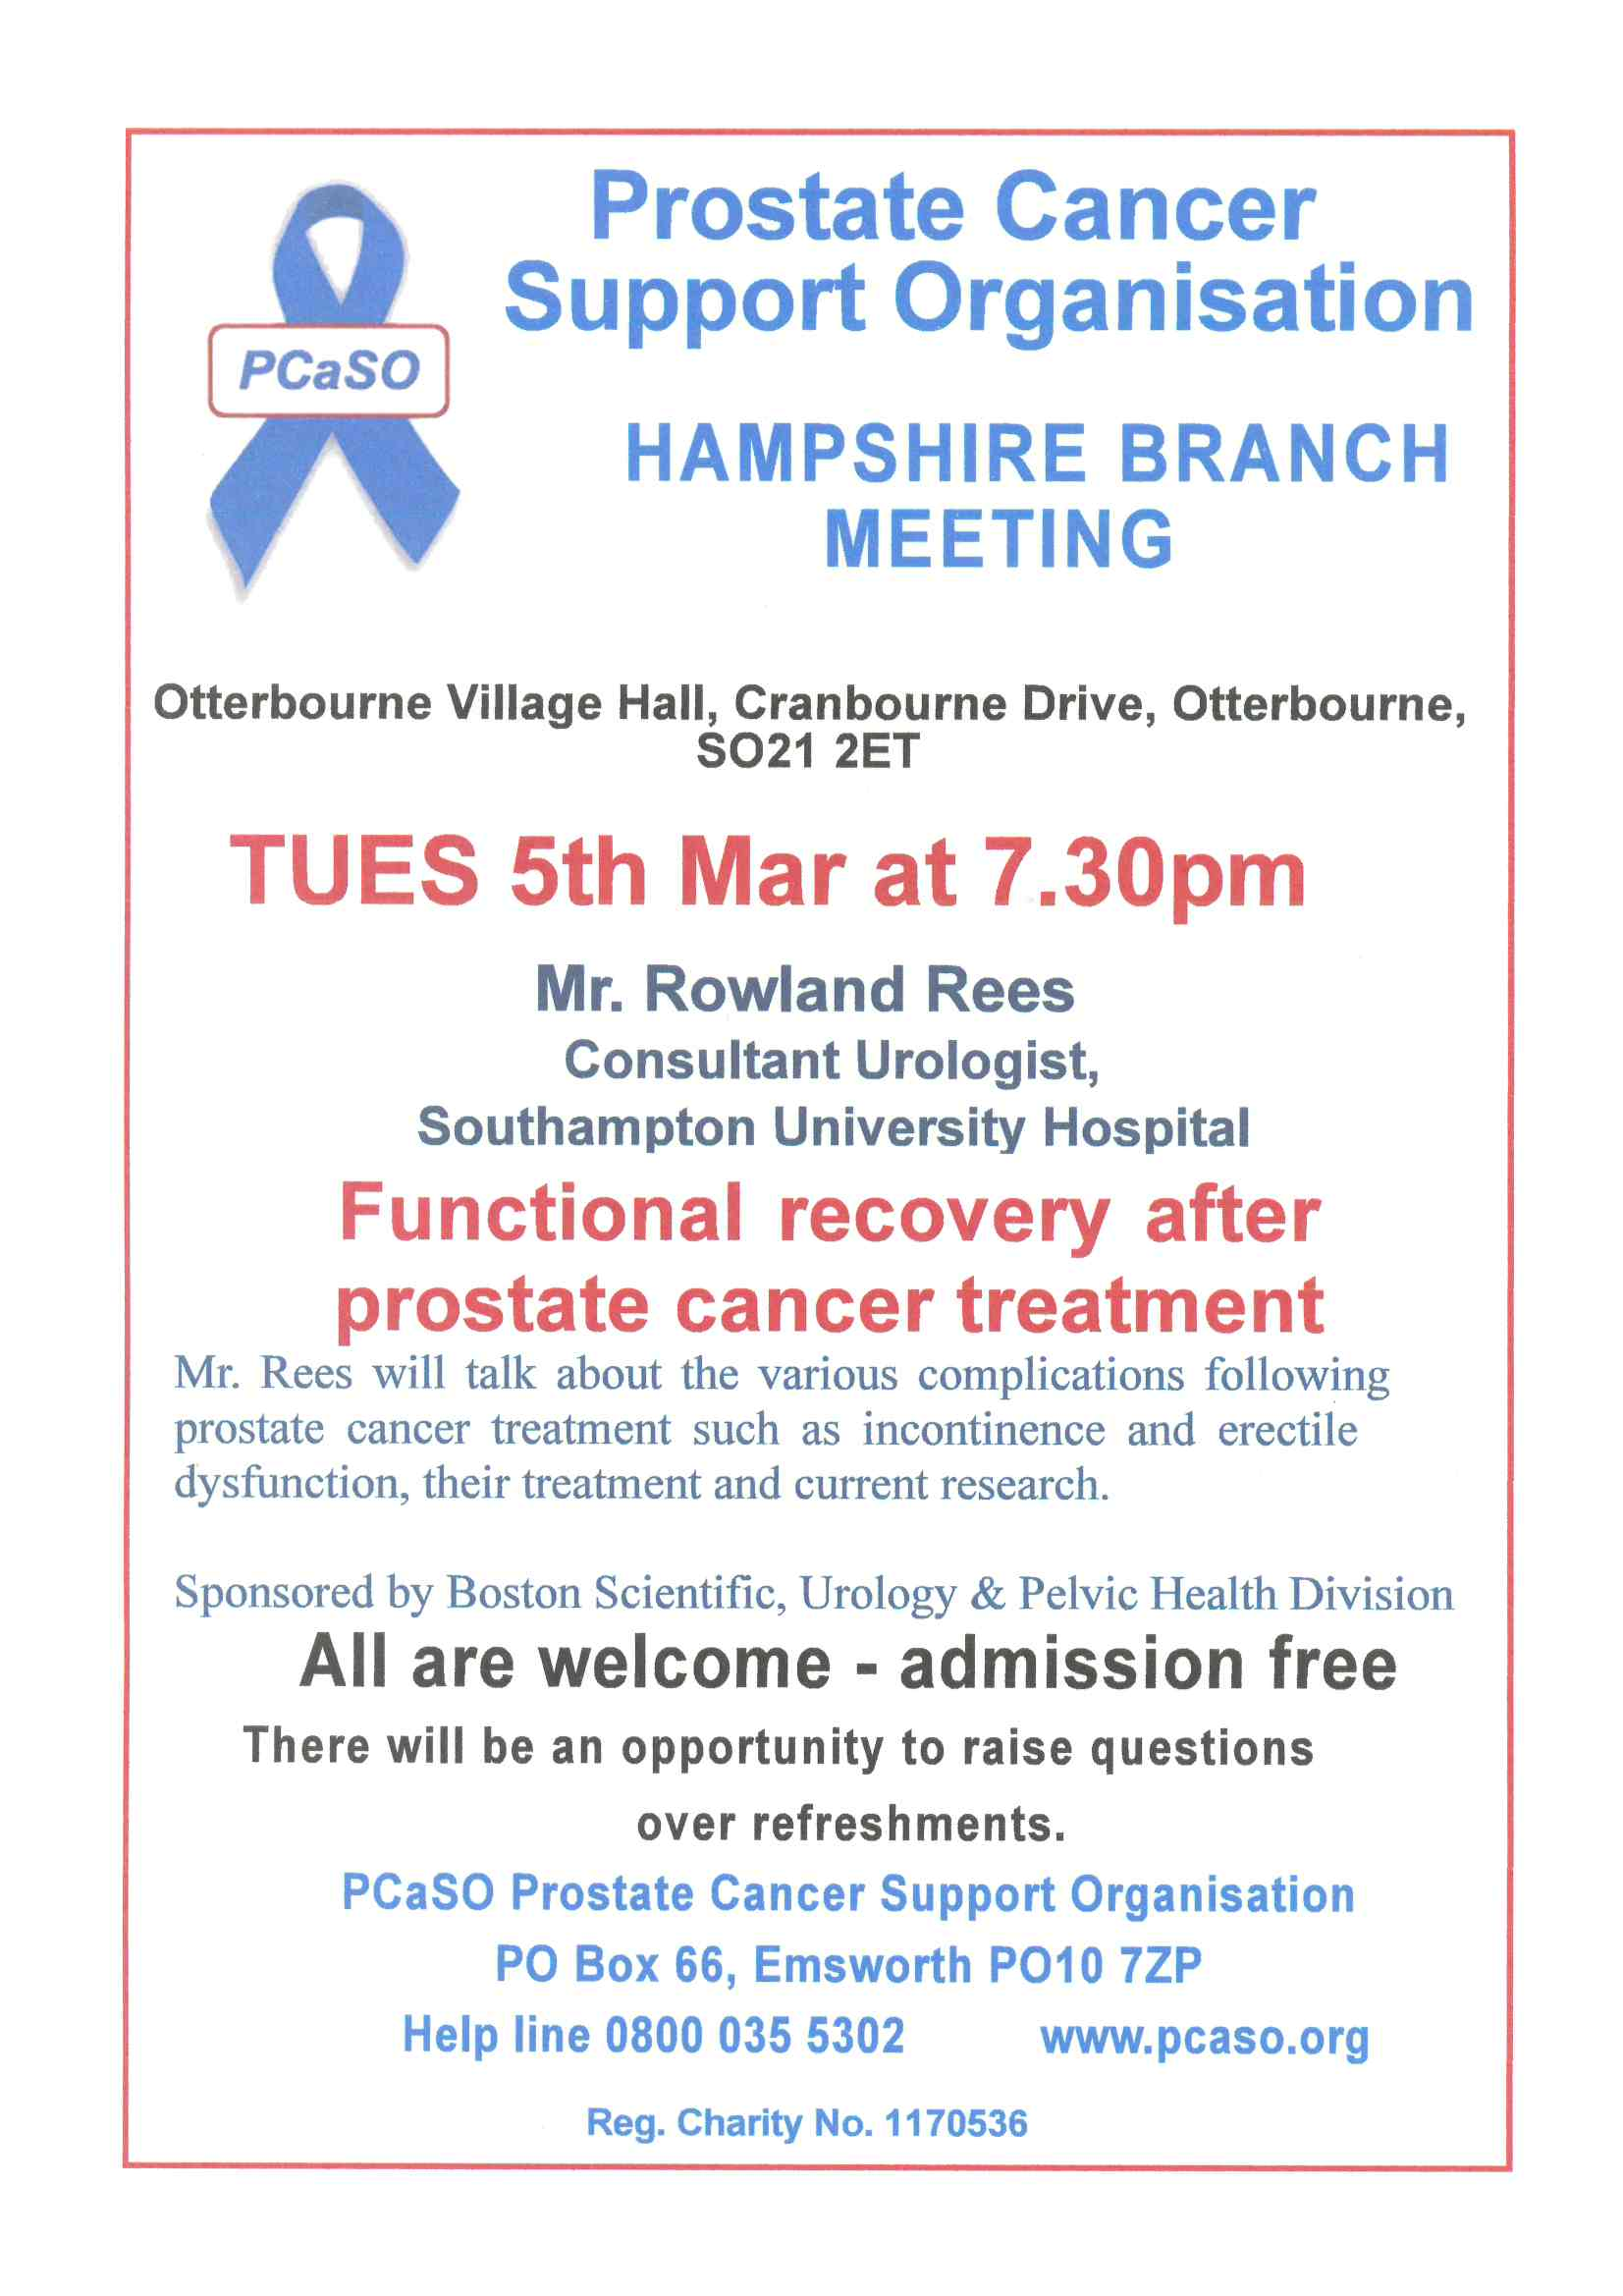 The PCSO are holding their Hampshire Branch Meeting on Tuesday 5 March at 7.30pm at Ottrbourne Village Hall.